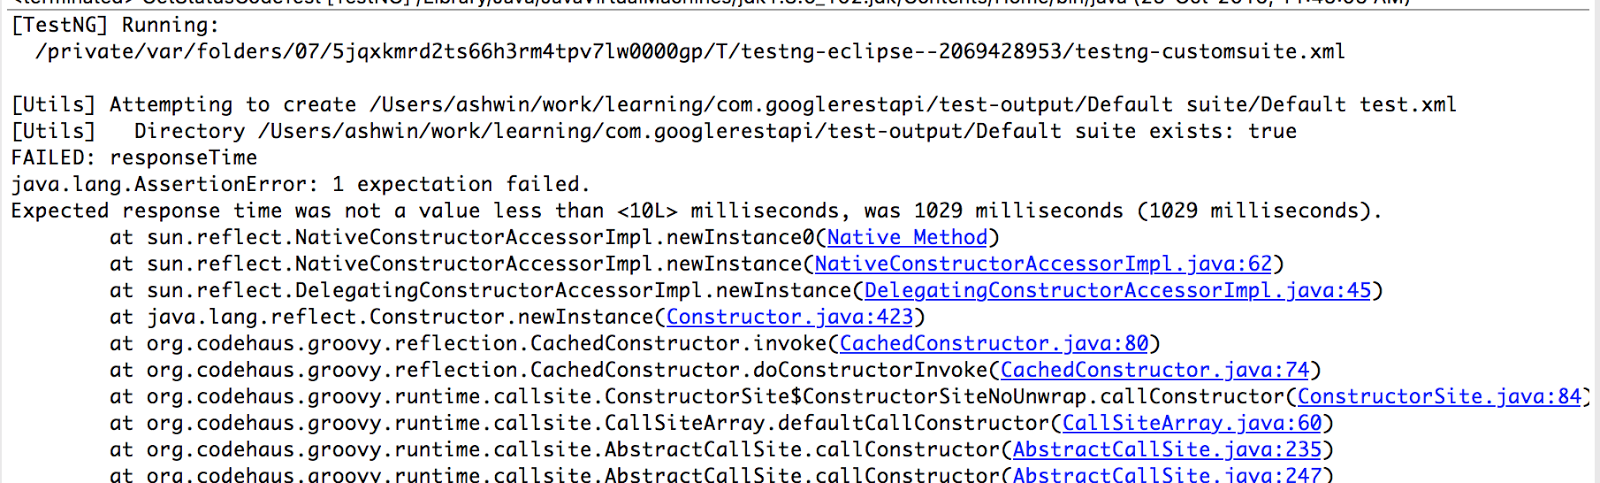 Automate Testing of Rest API using Rest Assured: To Check